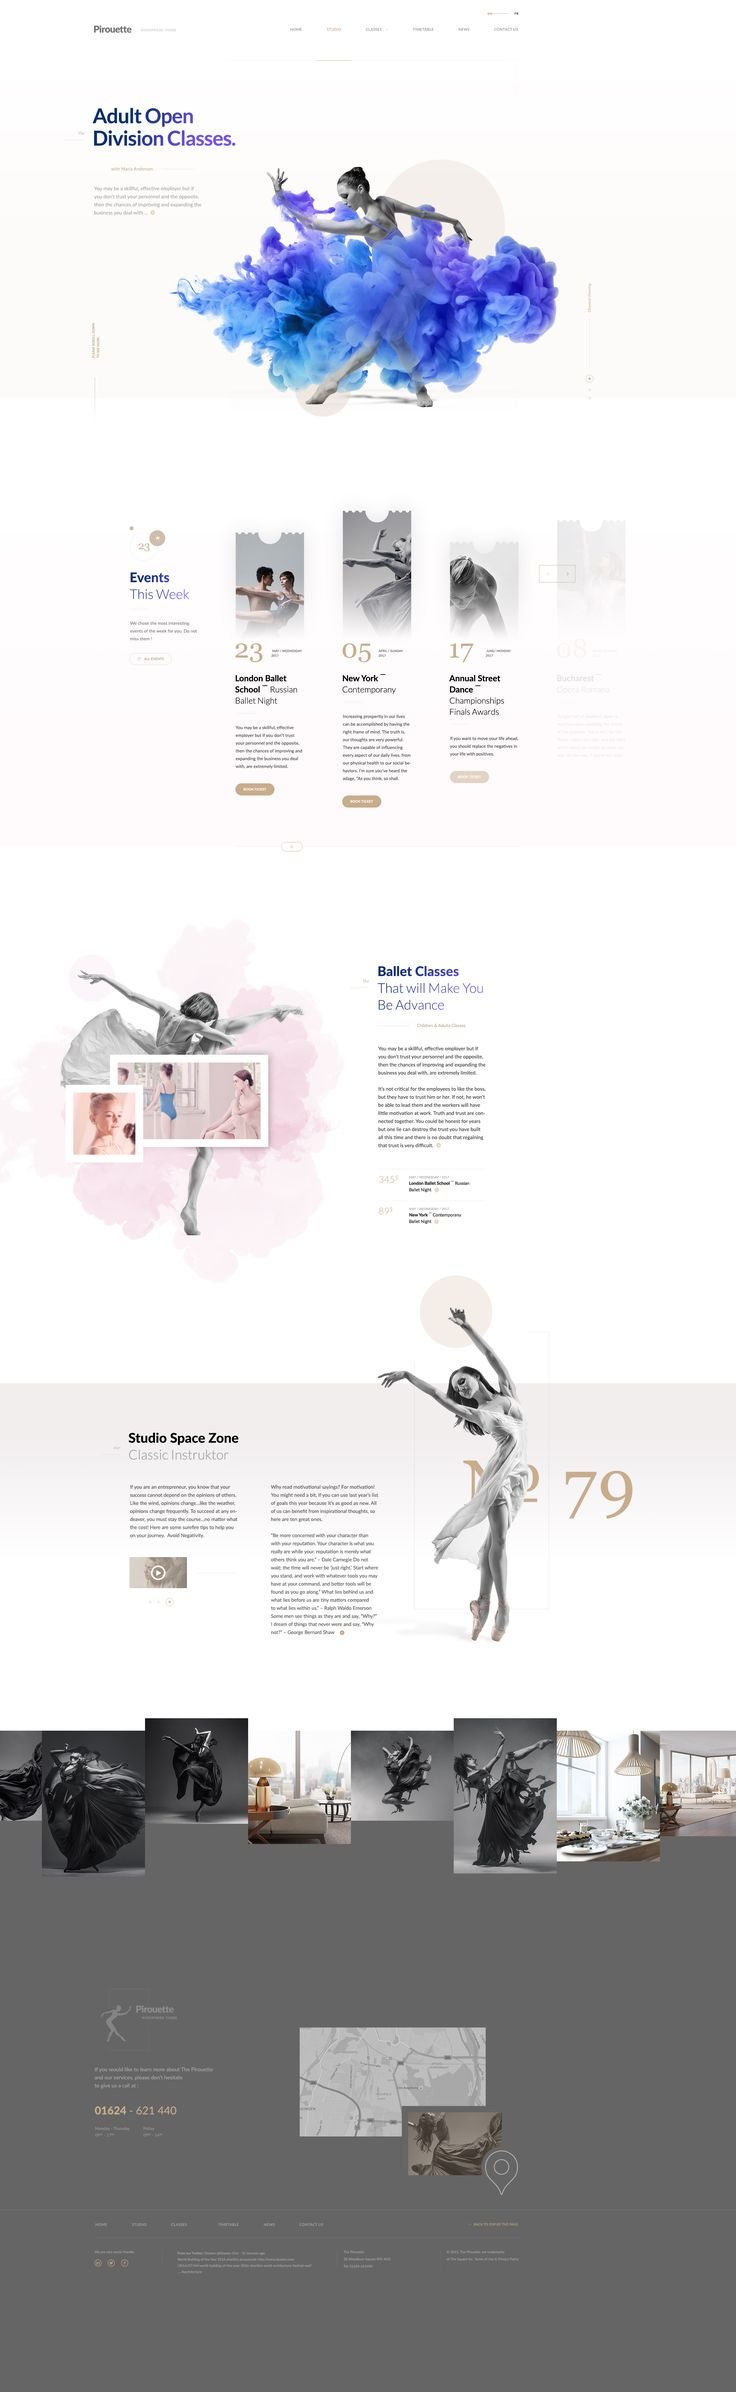 Together with @Radu Cretu we are building a beautiful WordPress Theme for dance classes. We are are now in the landing page area still trying new blocks and variants, but i wanted to share with you the results so far. Will post a link with the finish theme soon. All rights go to Curly Themes. https://dribbble.com/shots/2820651-Pirouette-Dance-Theme